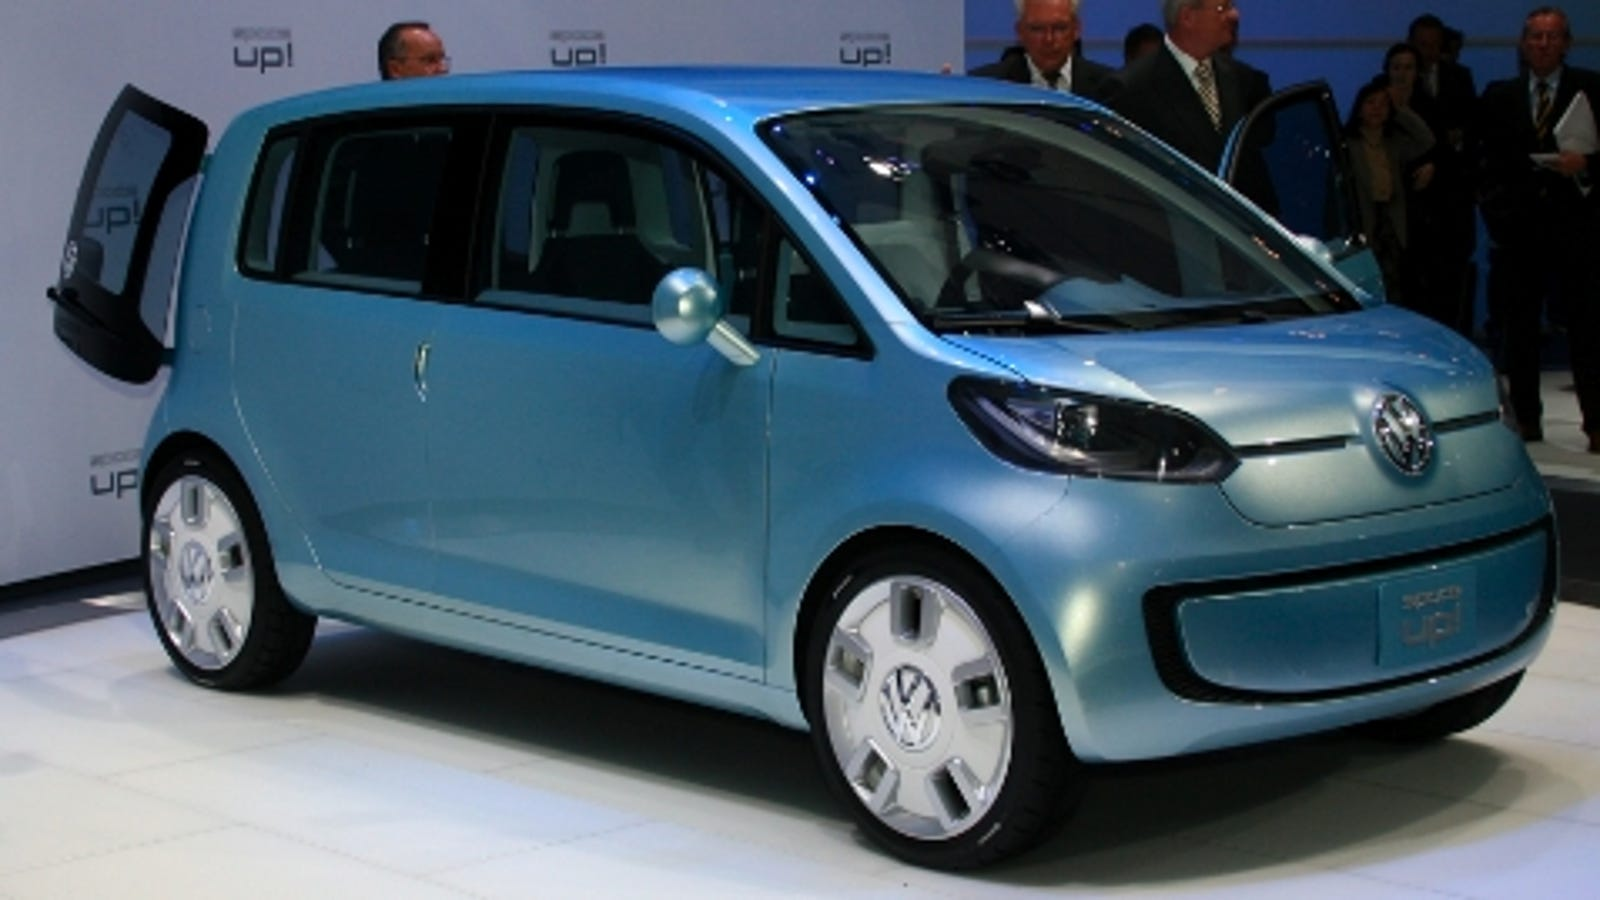 fuel cell version of vw space up concept head to los angeles. Black Bedroom Furniture Sets. Home Design Ideas